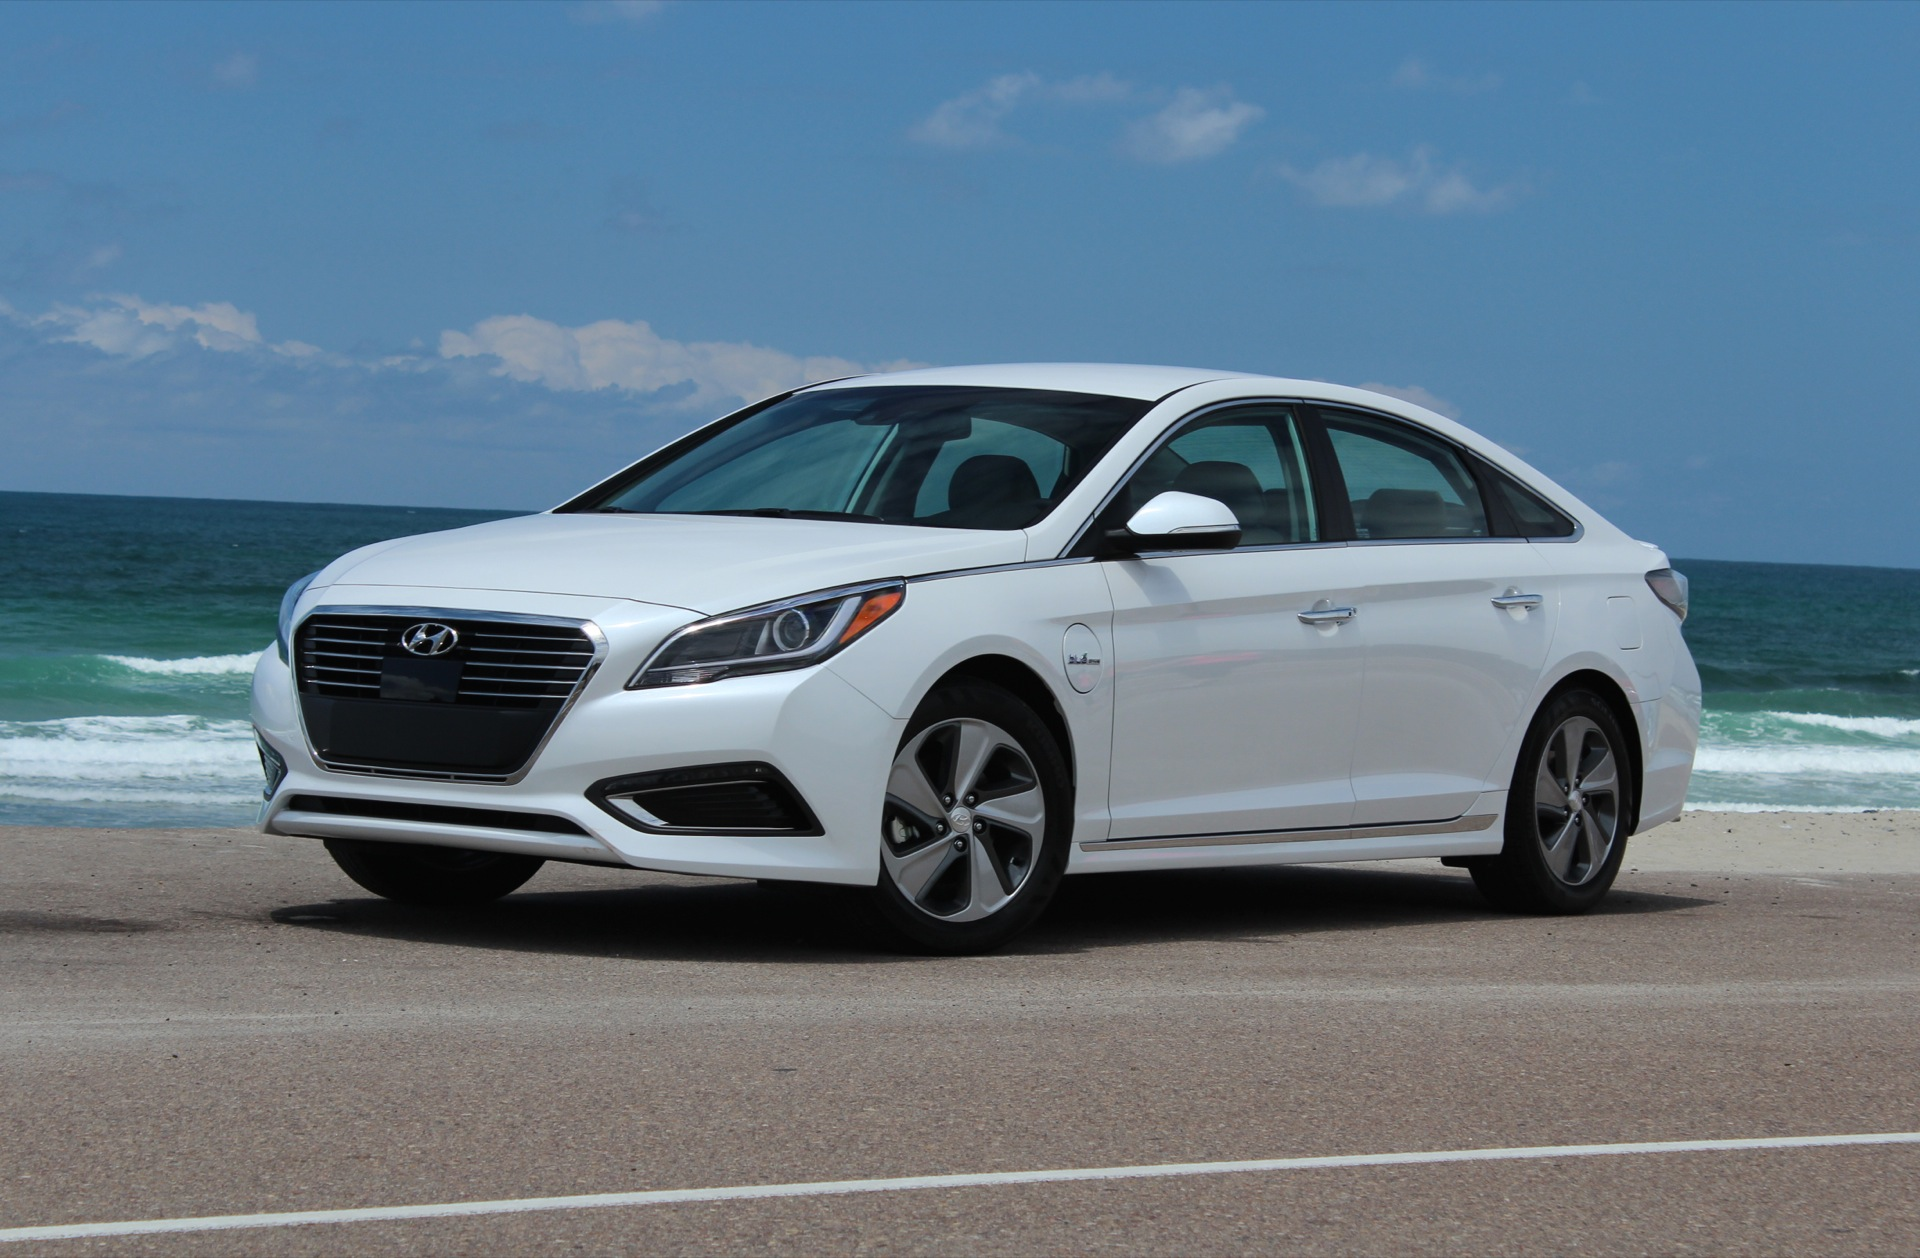 2016 Hyundai Sonata Performance Review The Car Connection